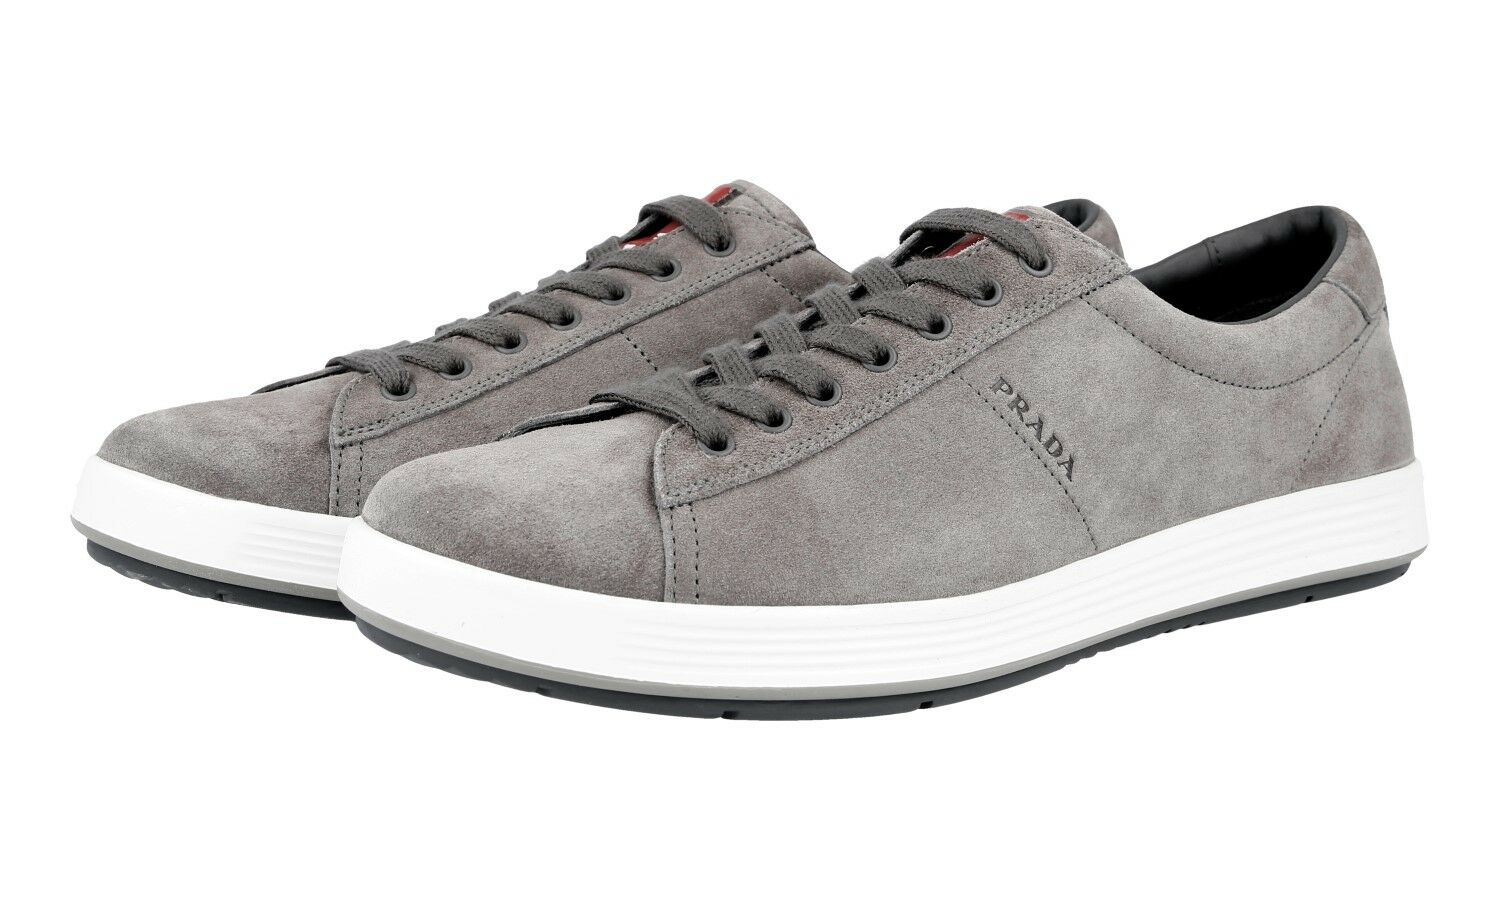 LUXUS PRADA SNEAKER SCHUHE 4E2860 WILDLEDER grey NEU NEW 9,5 43,5 44